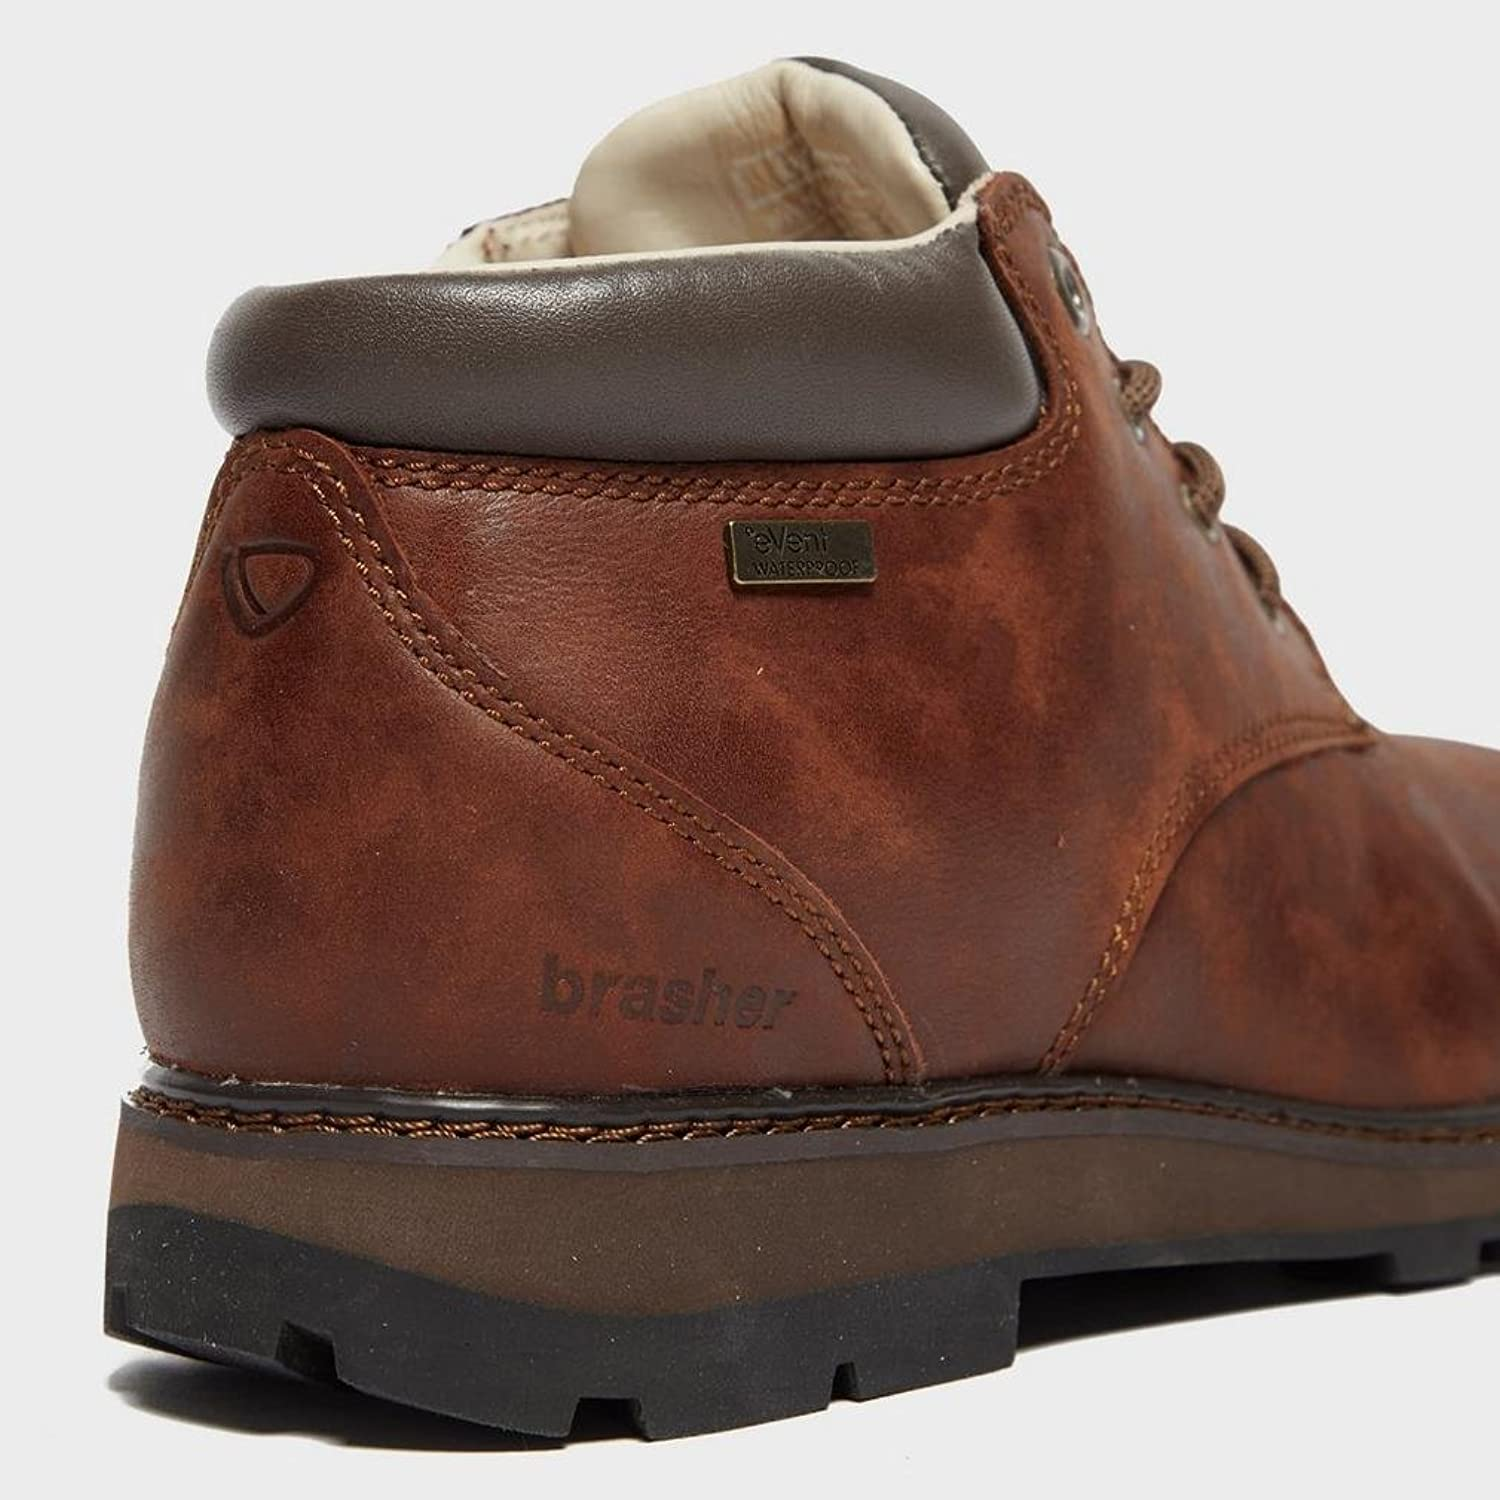 9193f22ee20a0 Com Brasher Men S Country Traveller Walking Boot Shoes. Brasher Country  Traveller Review Hype Vacation